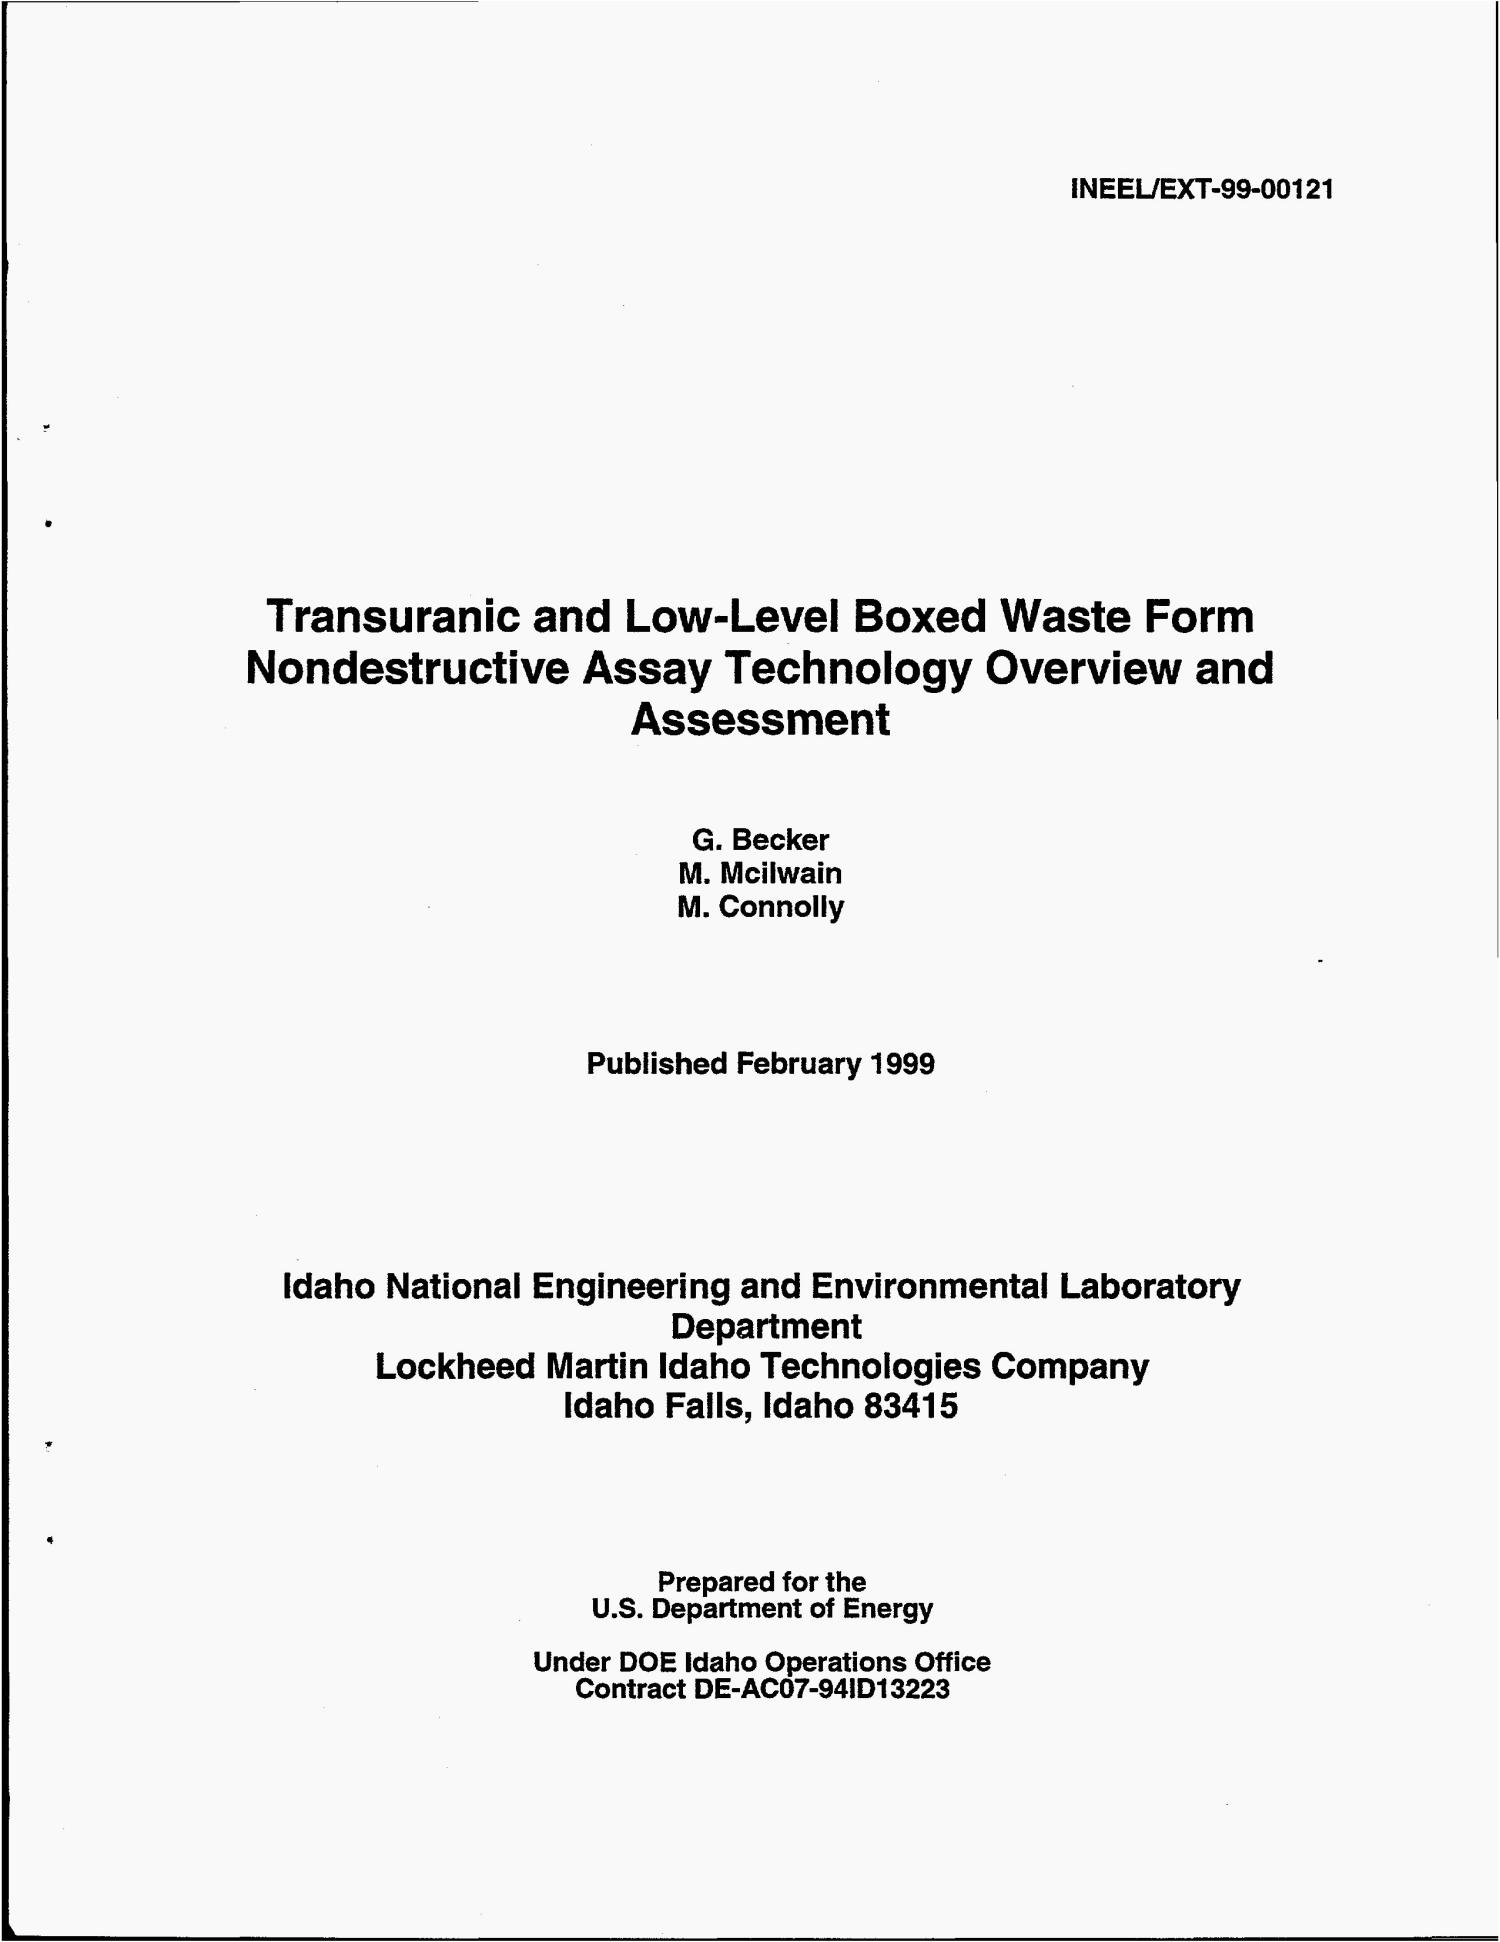 Transuranic and Low-Level Boxed Waste Form Nondestructive Assay Technology Overview and Assessment                                                                                                      [Sequence #]: 4 of 115